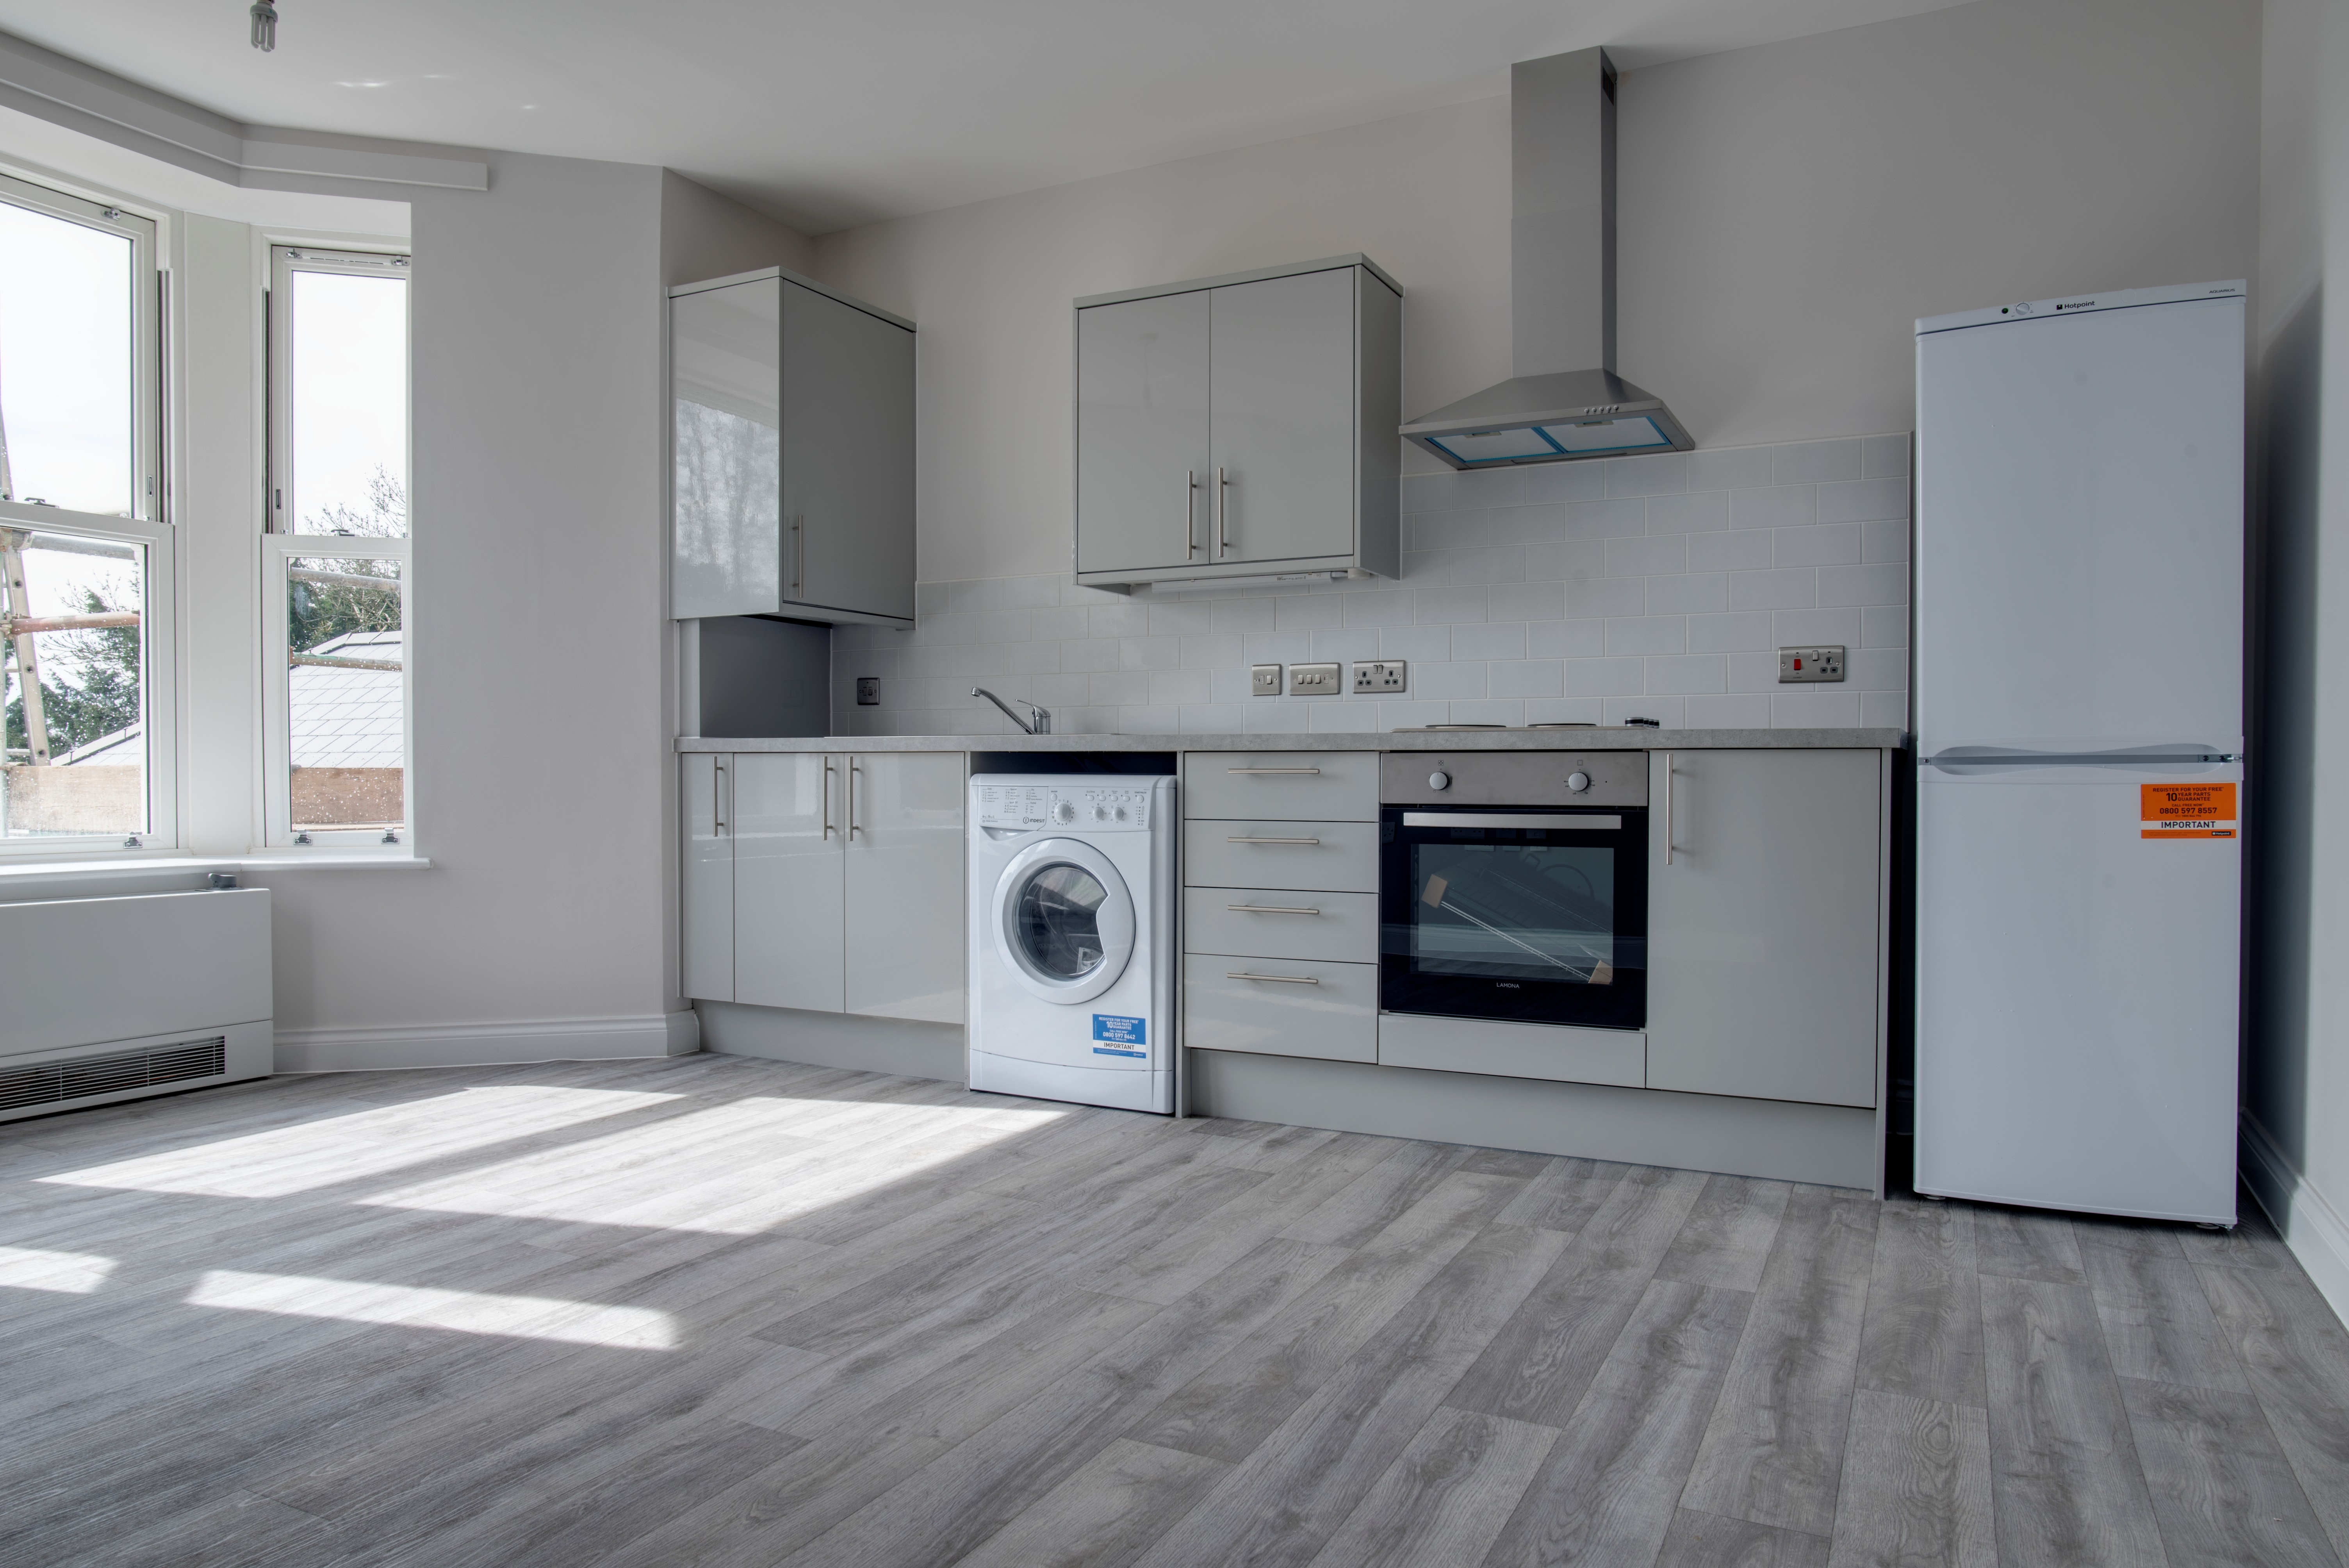 Polyflor flooring helps create modern social housing apartments in Newport